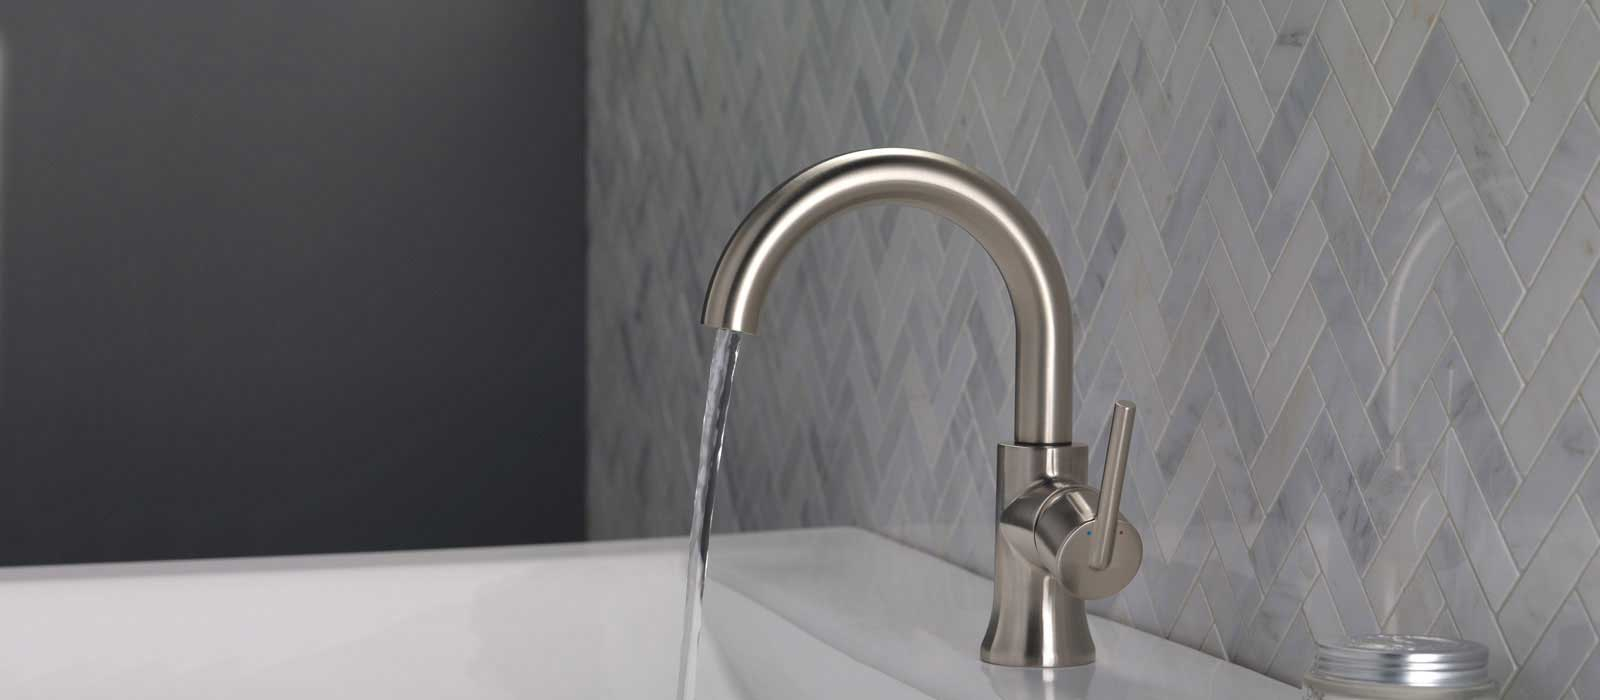 Amazing Trinsic® Bathroom Collection | Delta Faucet inside Awesome Delta Trinsic Bathroom Faucet